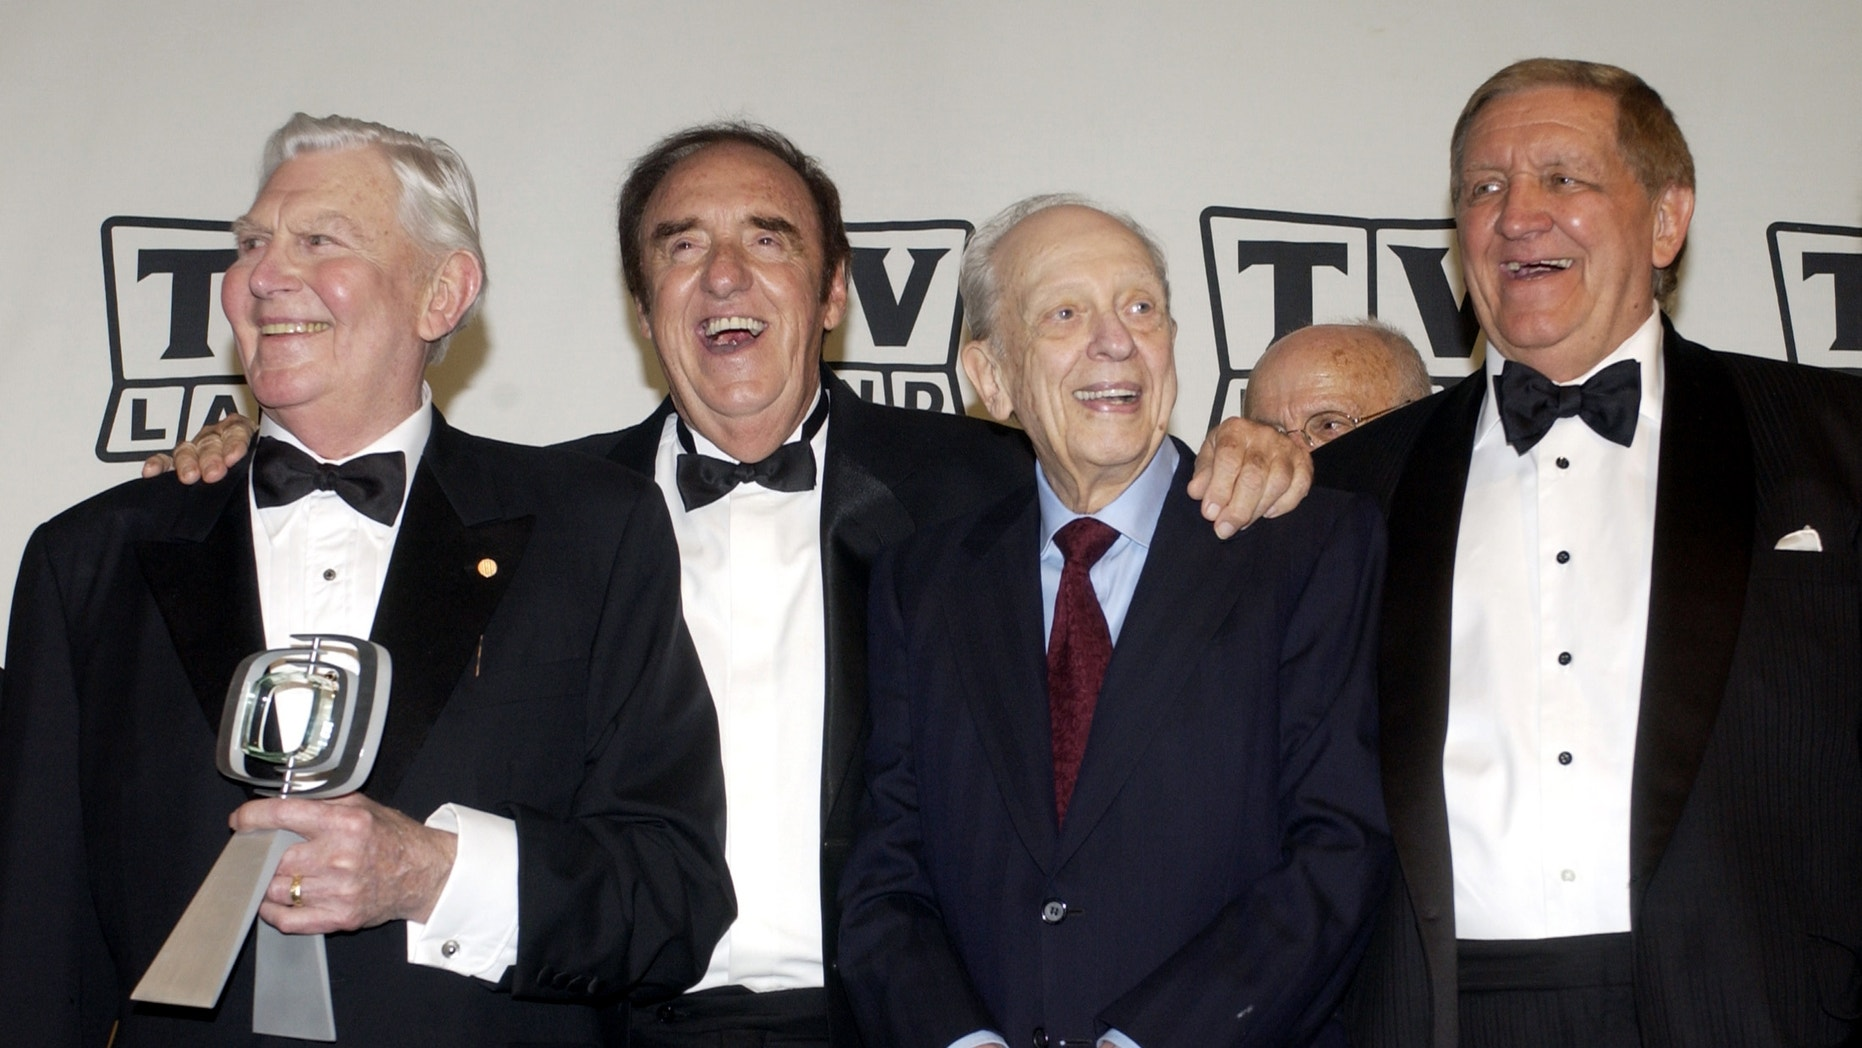 """Andy Griffith, Jim Nabors, Don Knotts and George Lindsey, cast members in """"The Andy Griffith Show,"""" pose backstage after accepting the Legend Award for their series during a taping of the second annual TV Land Awards in Hollywood March 7, 2004."""